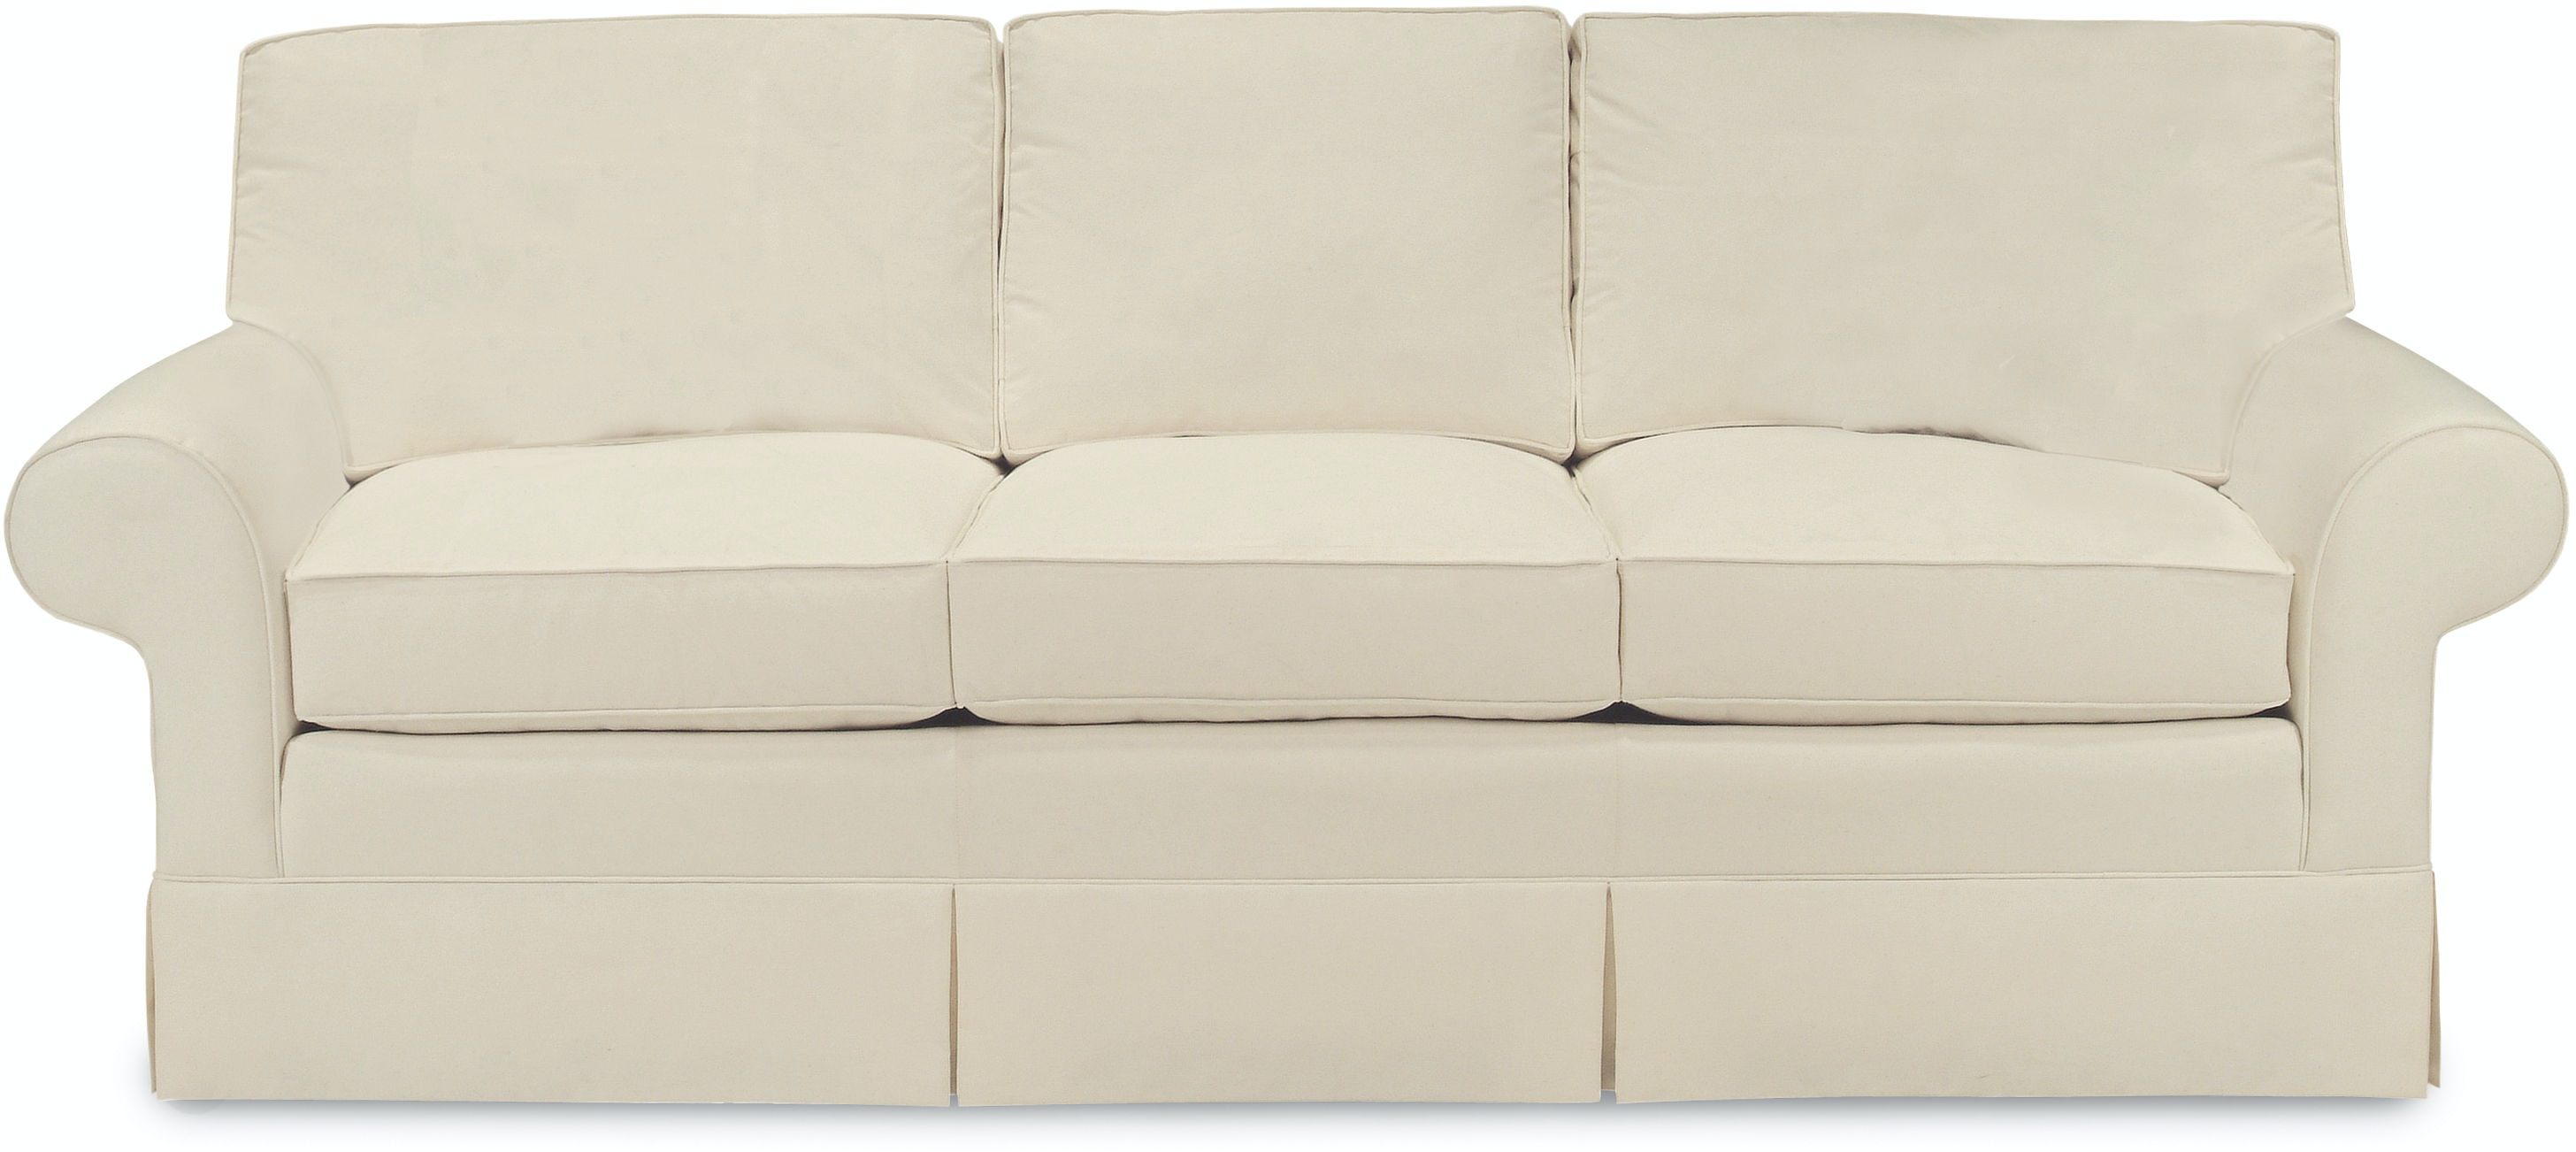 Kravet Smart Harvard Three Seat Sofa S821D S Kravet New York NY